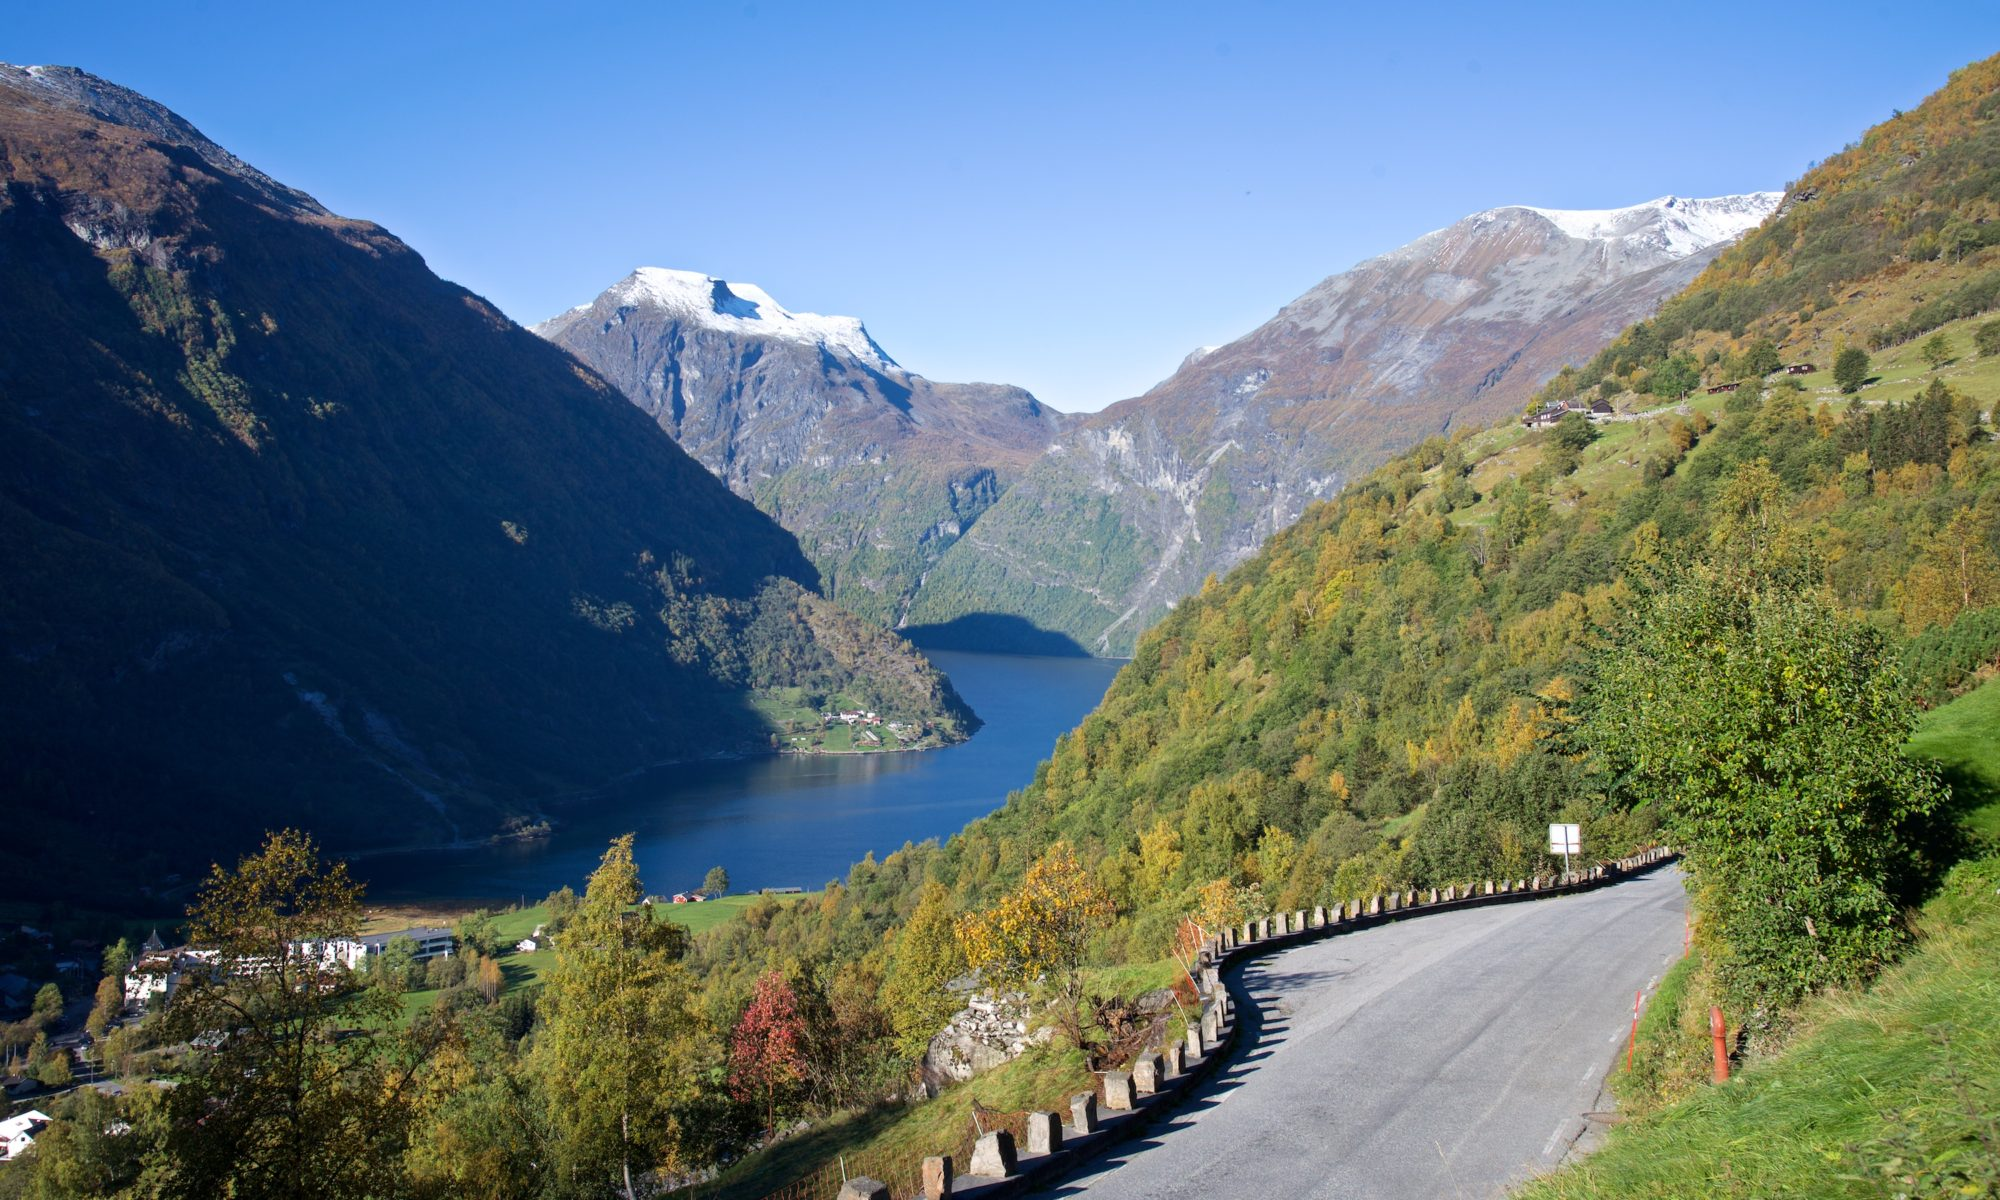 View from Vesterås towards Geiranger and the Geirangerfjord, Norway